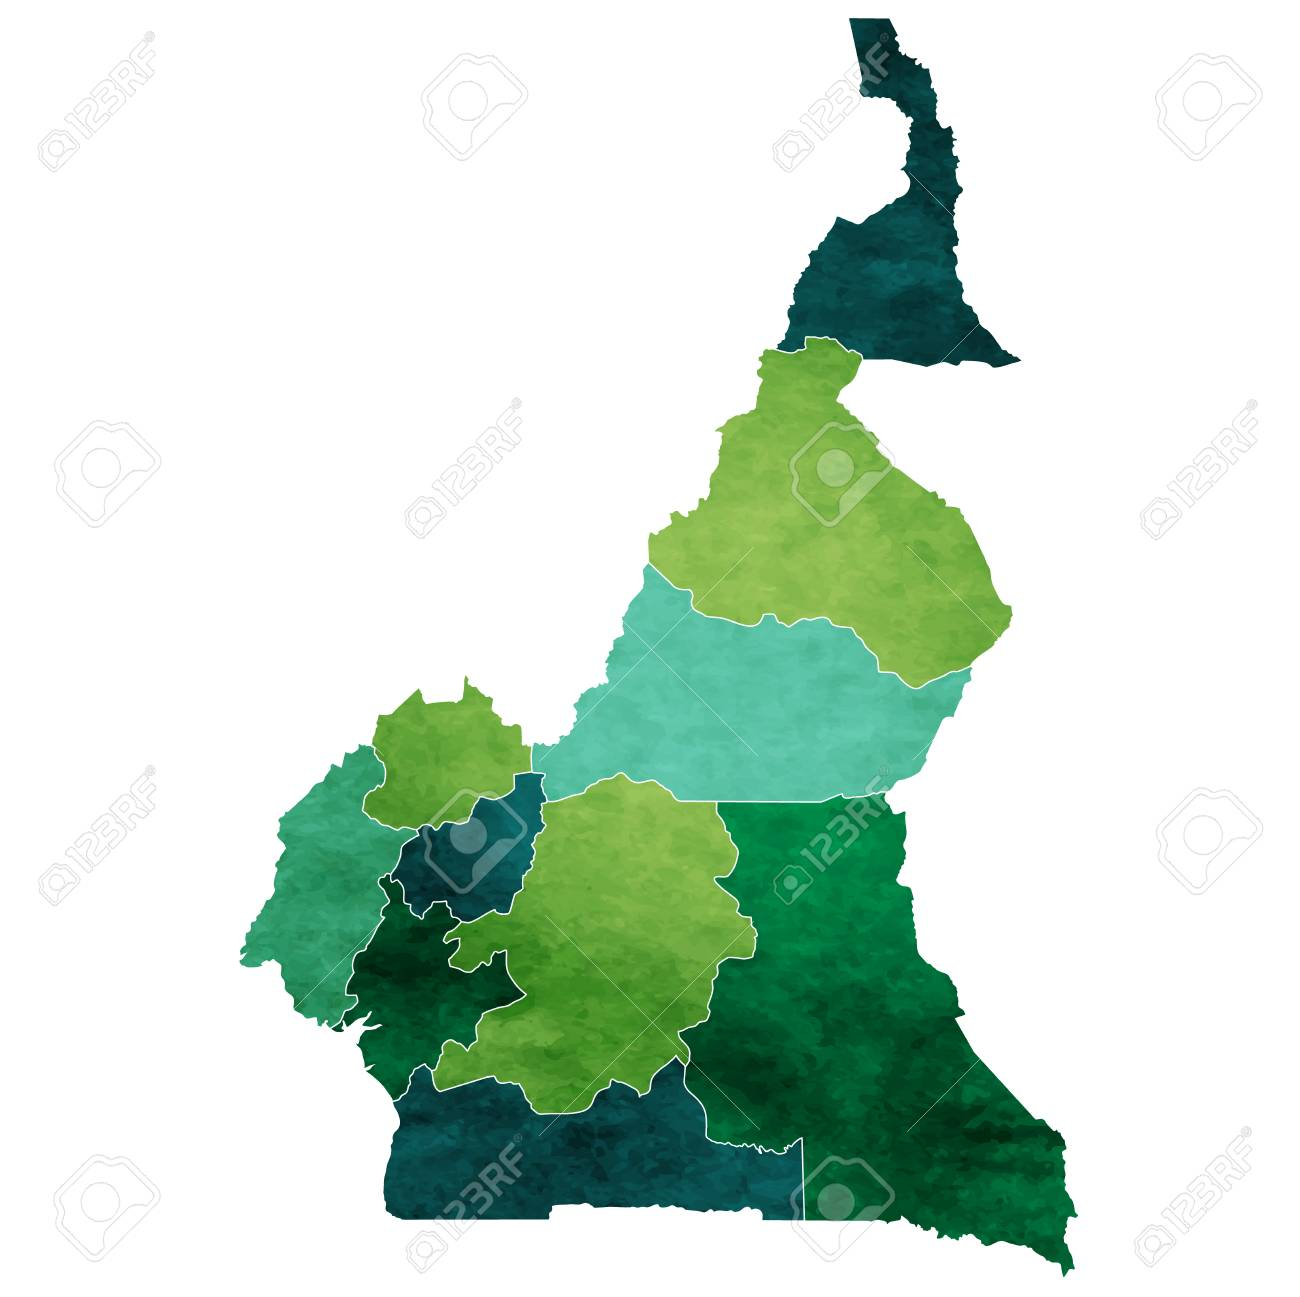 Cameroon World map country icon